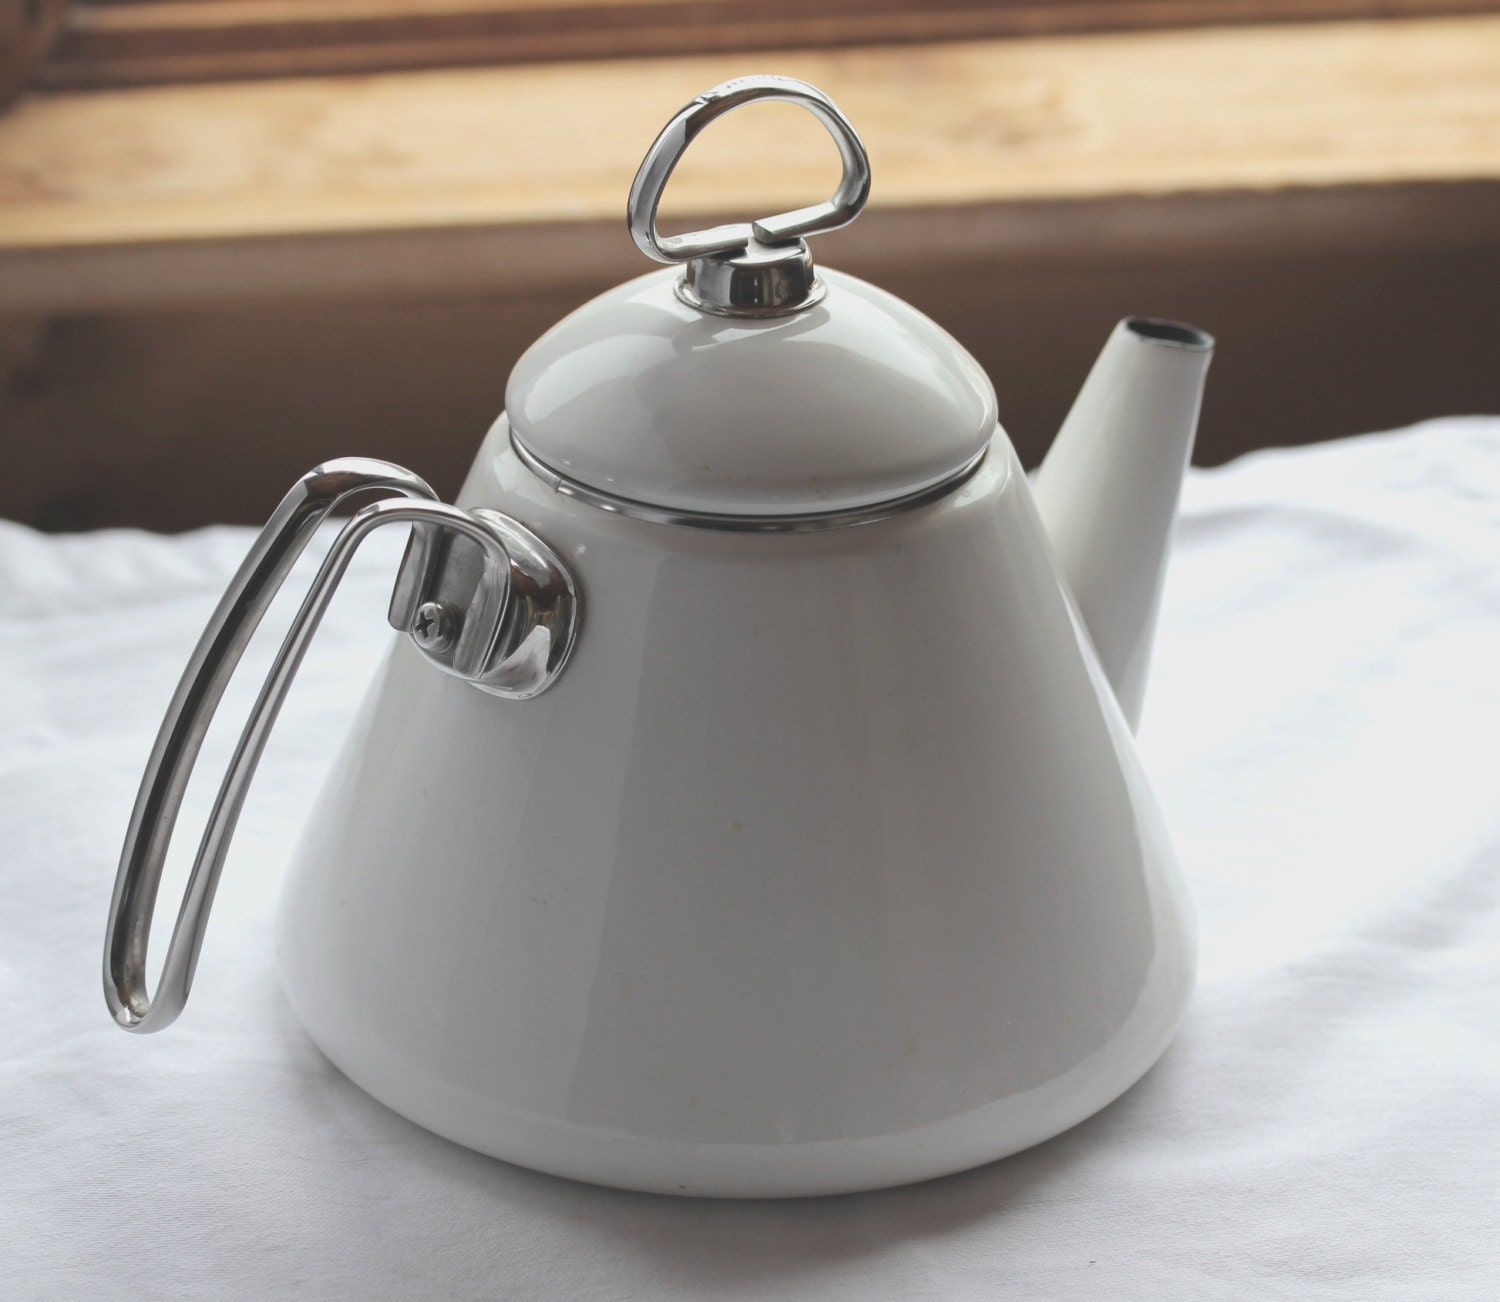 Vintage chantal tea kettle white - Chantal teapots ...